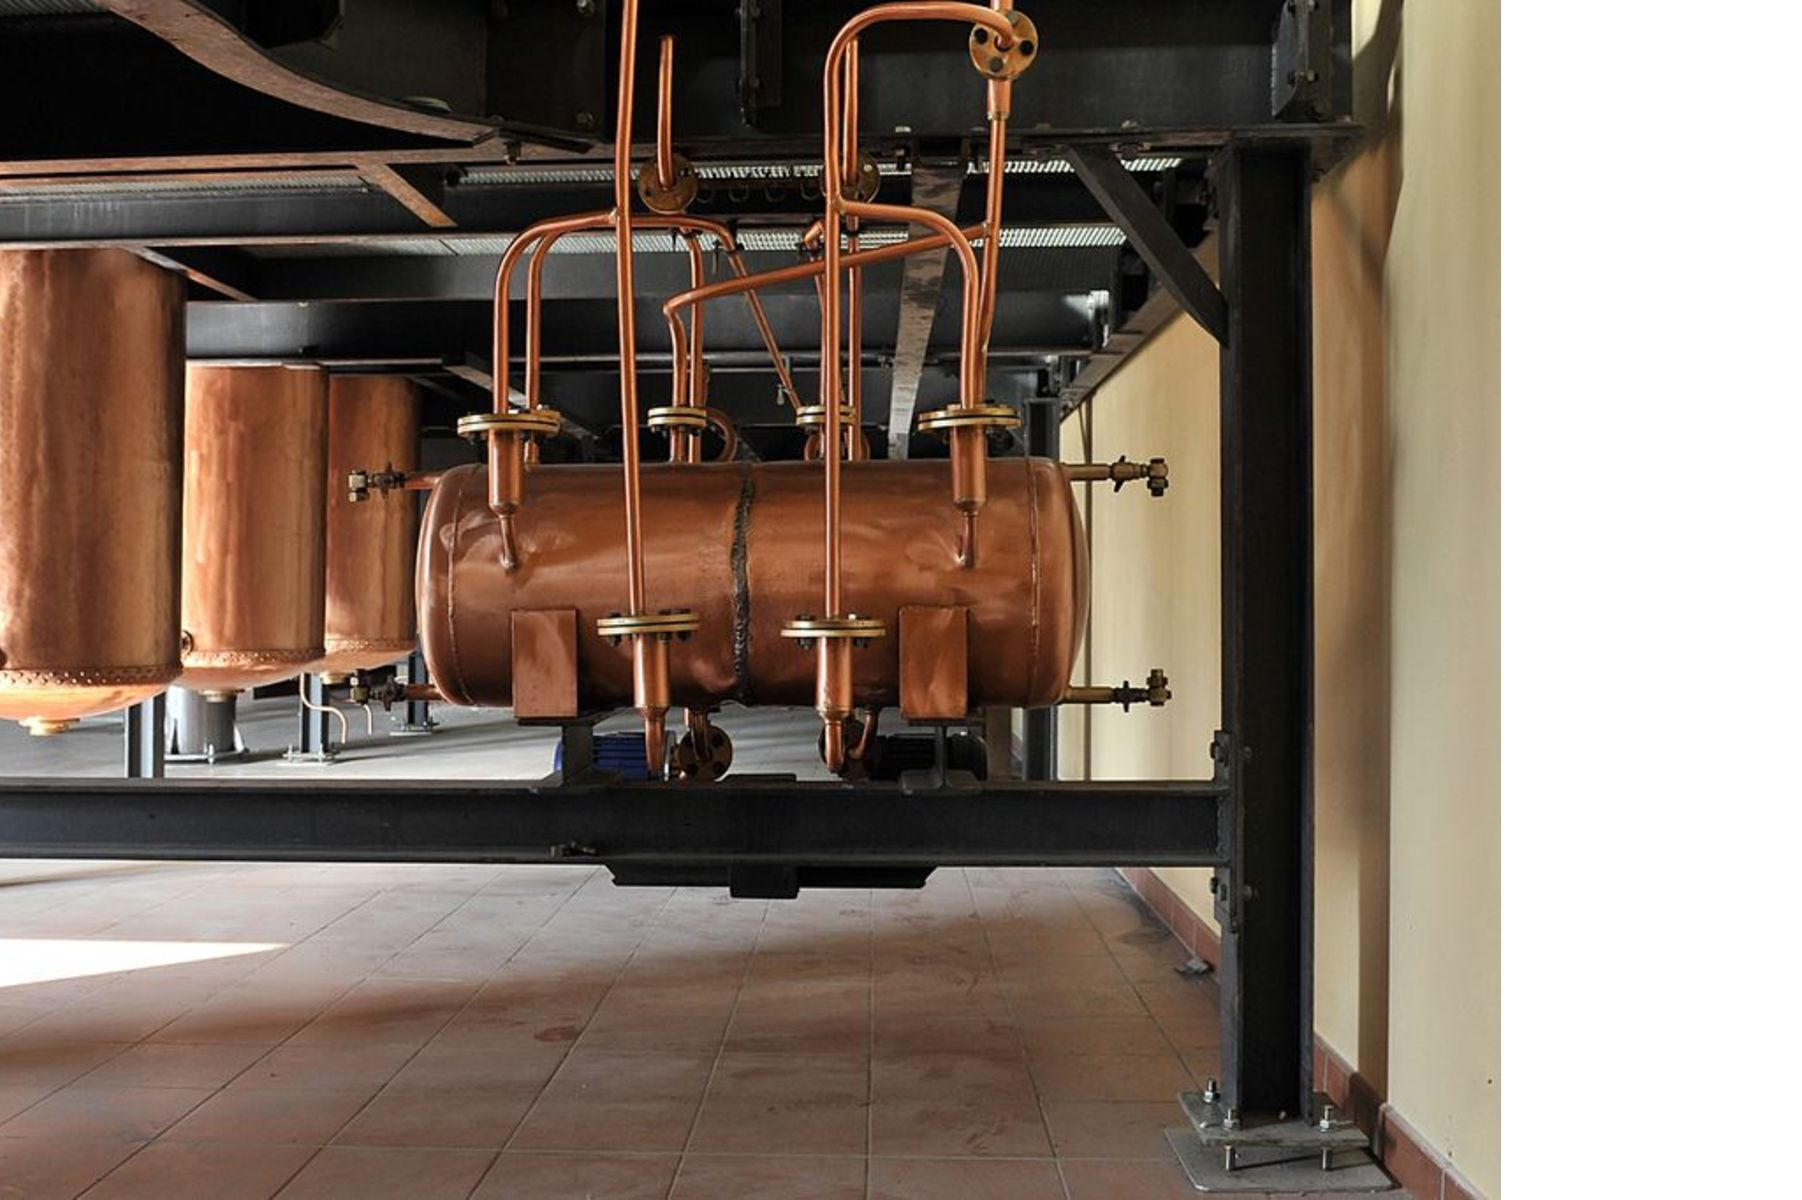 Distilleria Zanin Zugliano with FMG floor tiles